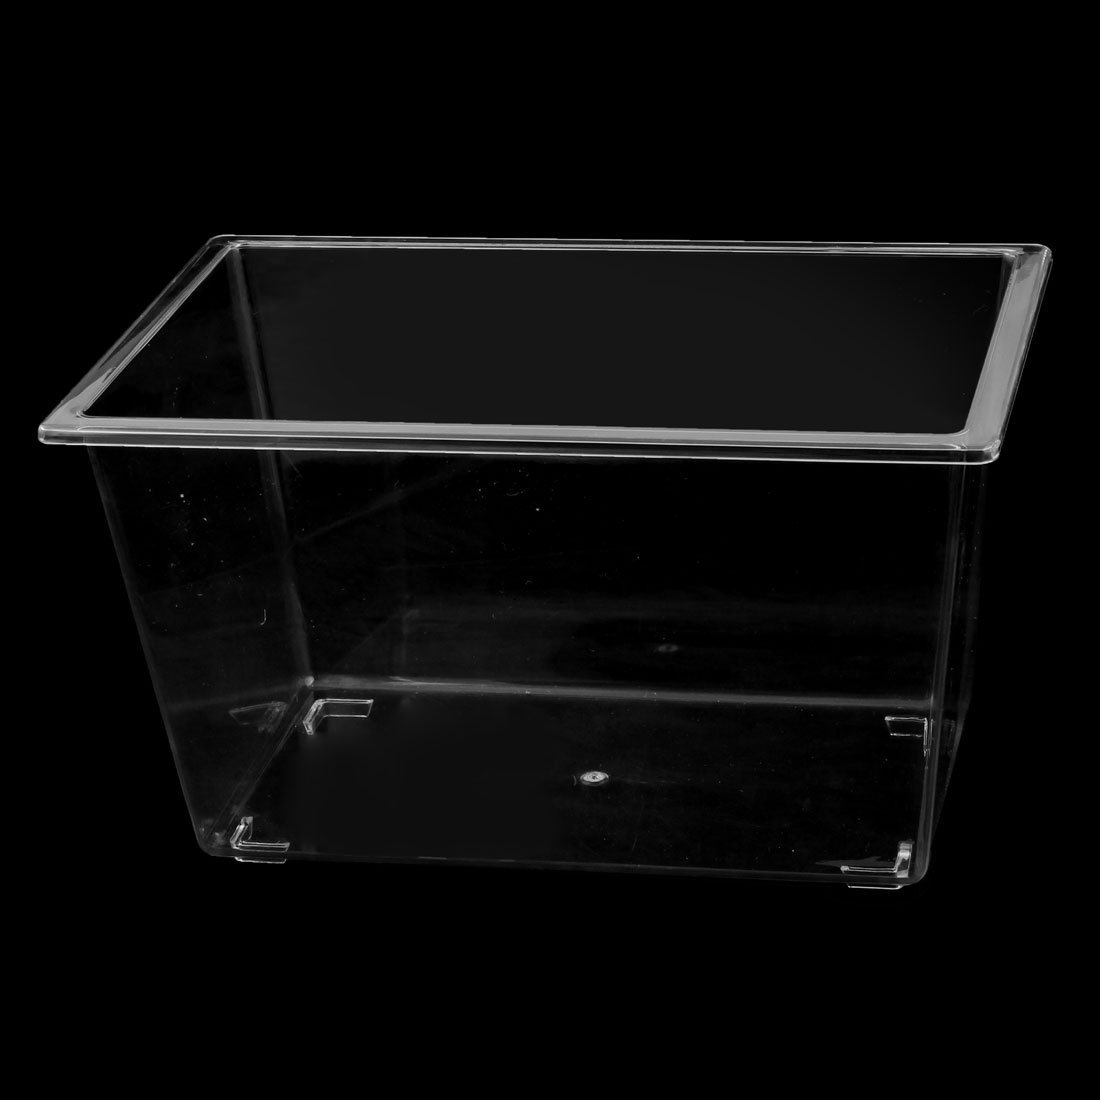 Amazon.com : eDealMax Forma plástico Rectangular acuario Betta Fish Tank Alimento de Mascota Caja : Pet Supplies